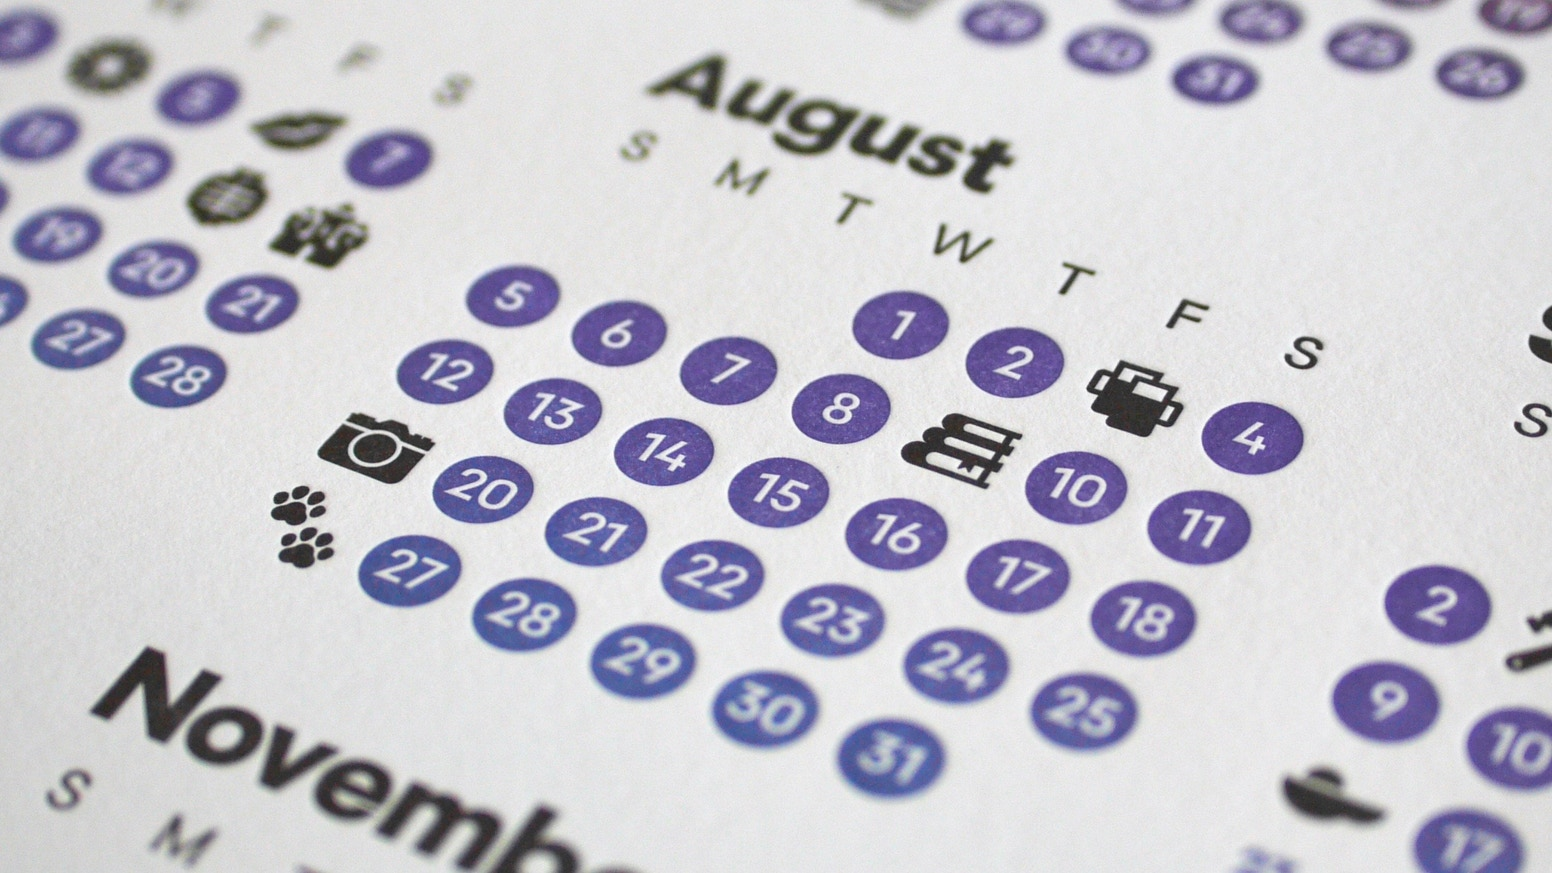 The Unicalendar is a luxuriously printed single-page letterpress calendar inspired by worldly celebrations and exotic emoji.